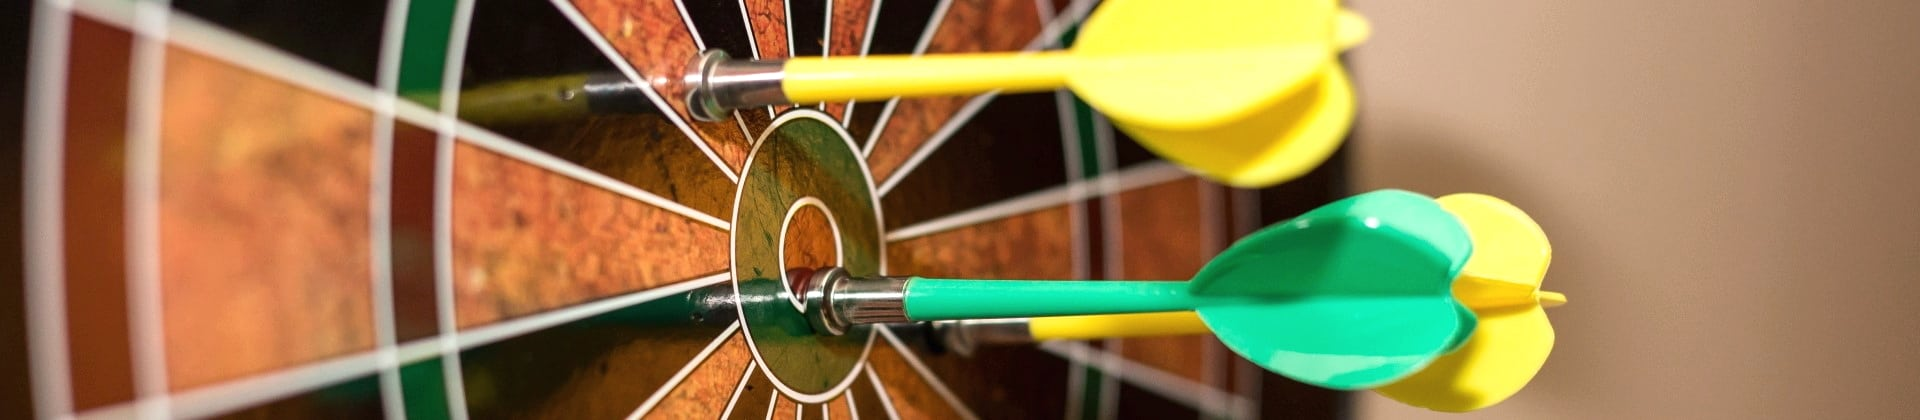 Best Magnetic Dart Boards Reviewed in Detail